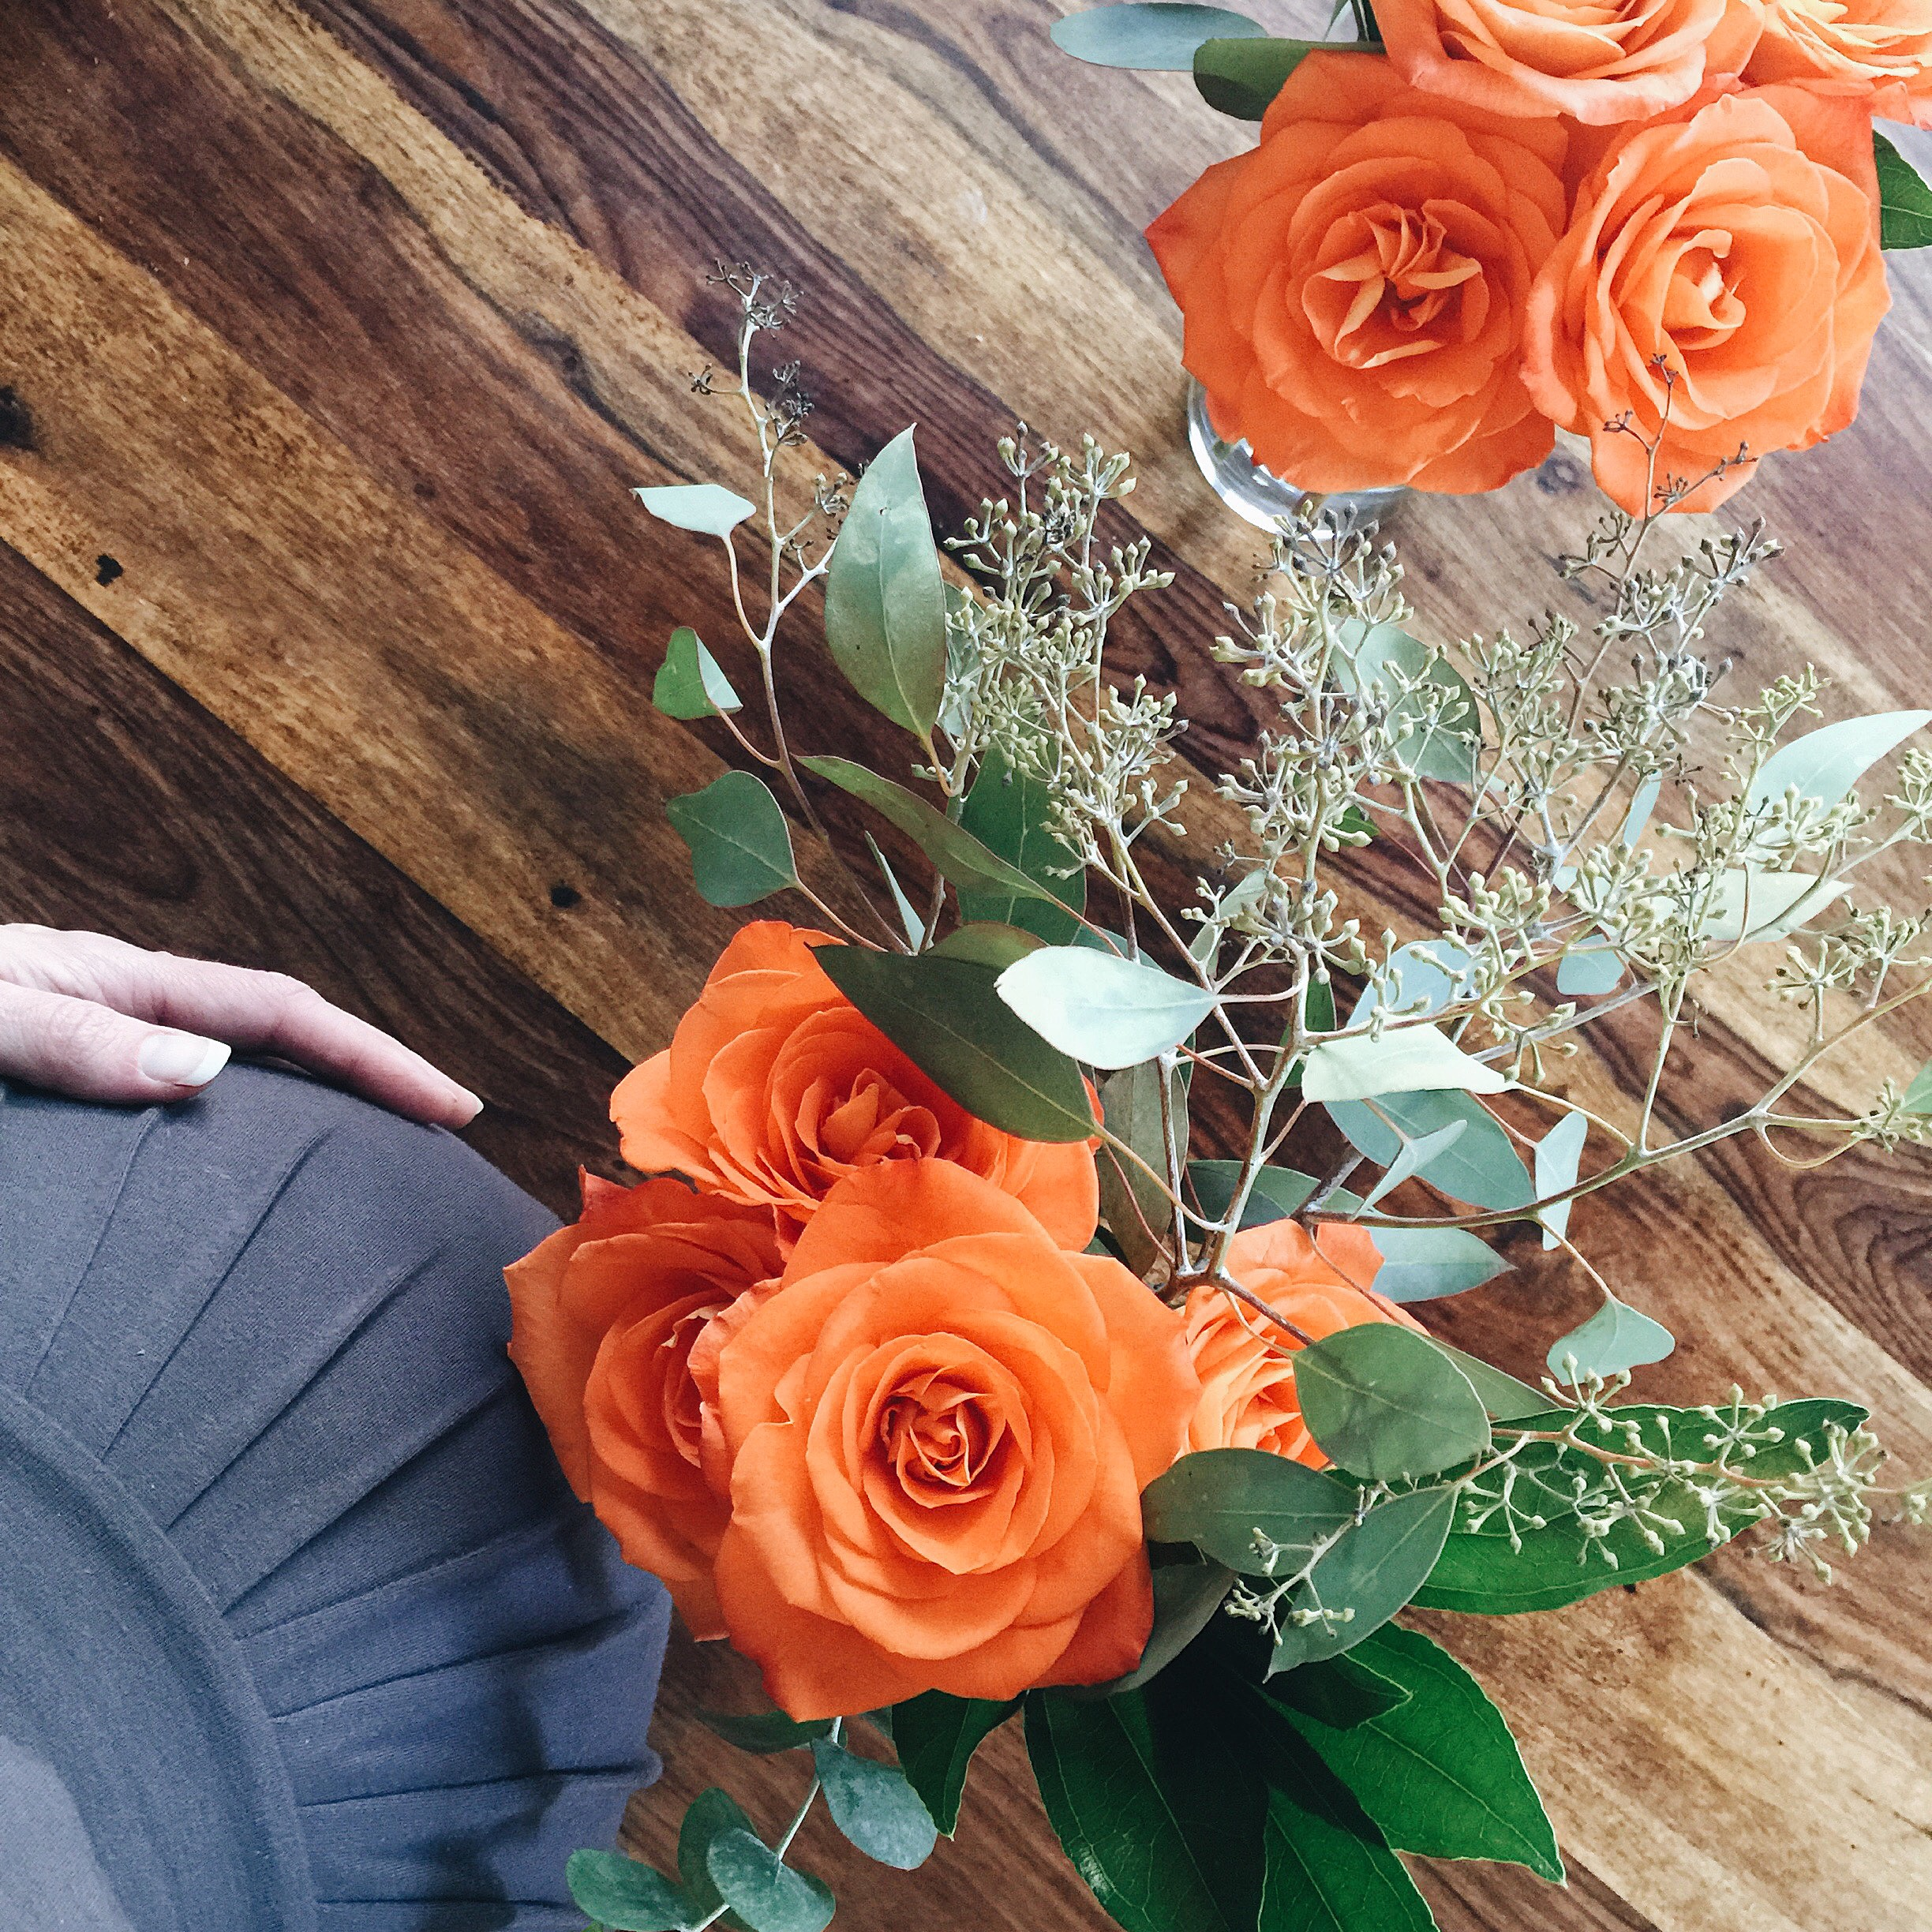 3rd Trimester Pregnancy Tips for looking your best at your biggest via Count Me Healthy